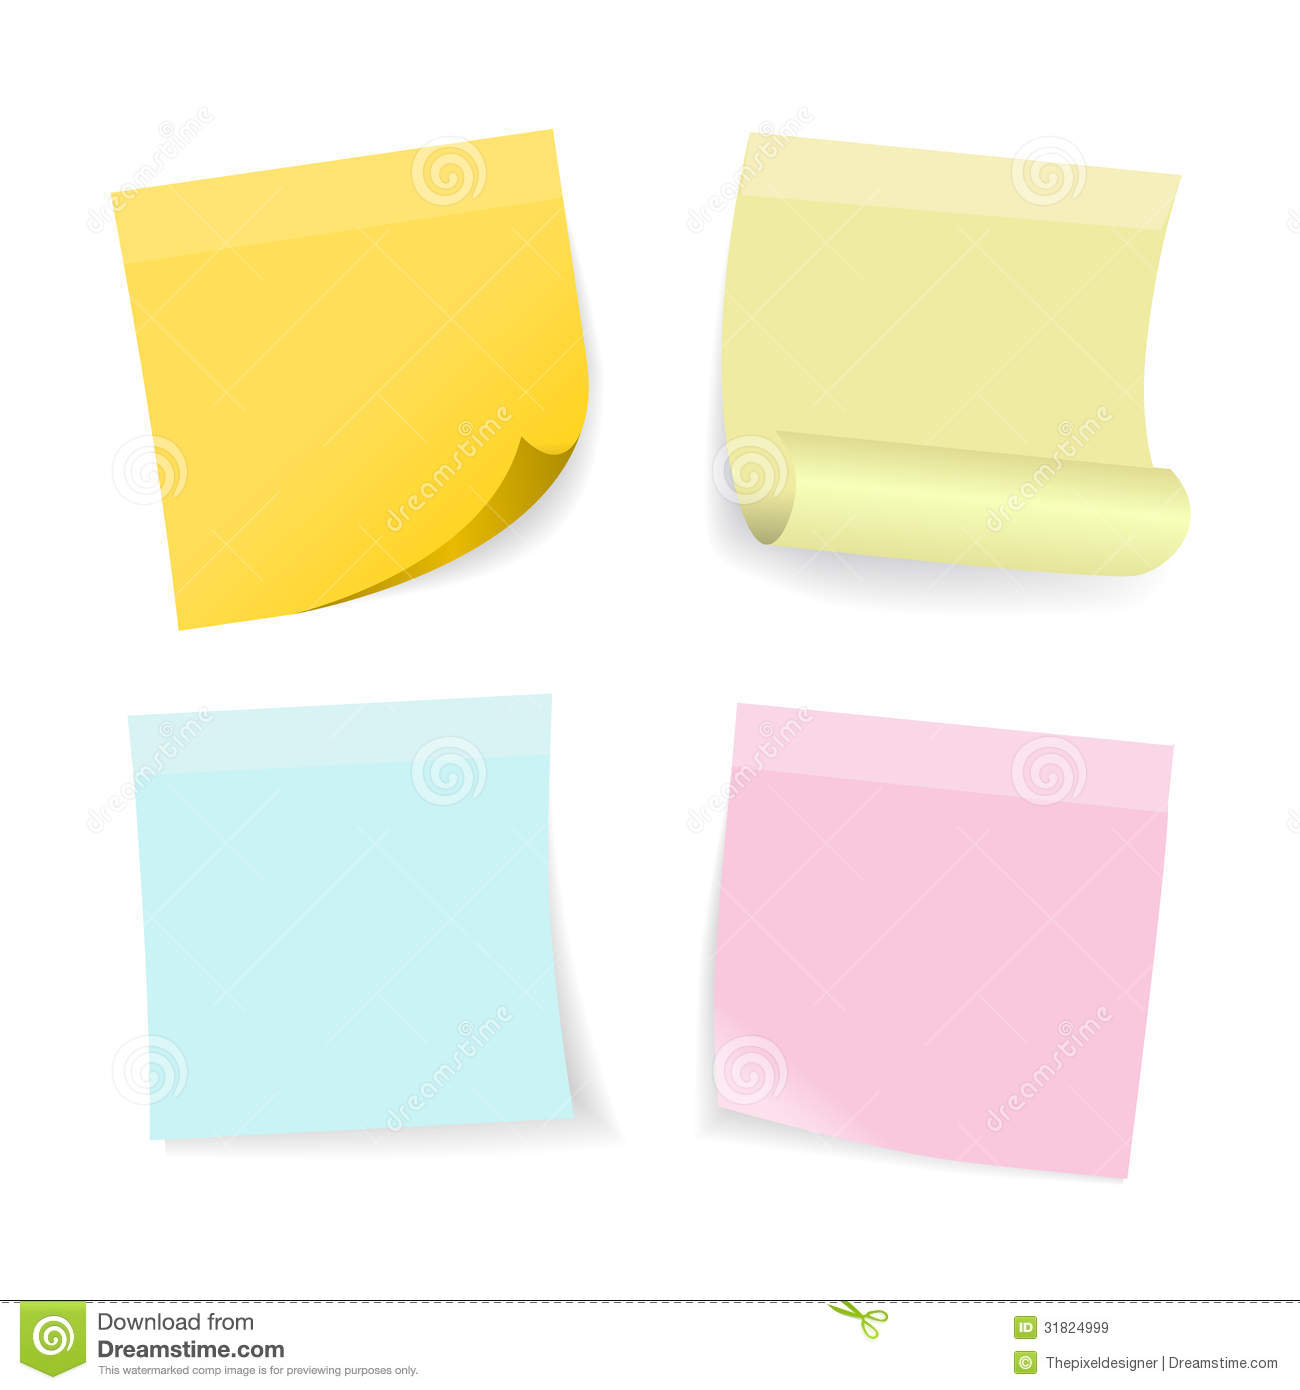 Free vector graphic sticky note note info paper free image on - Royalty Free Stock Photo Set Sticky Vector Green Note